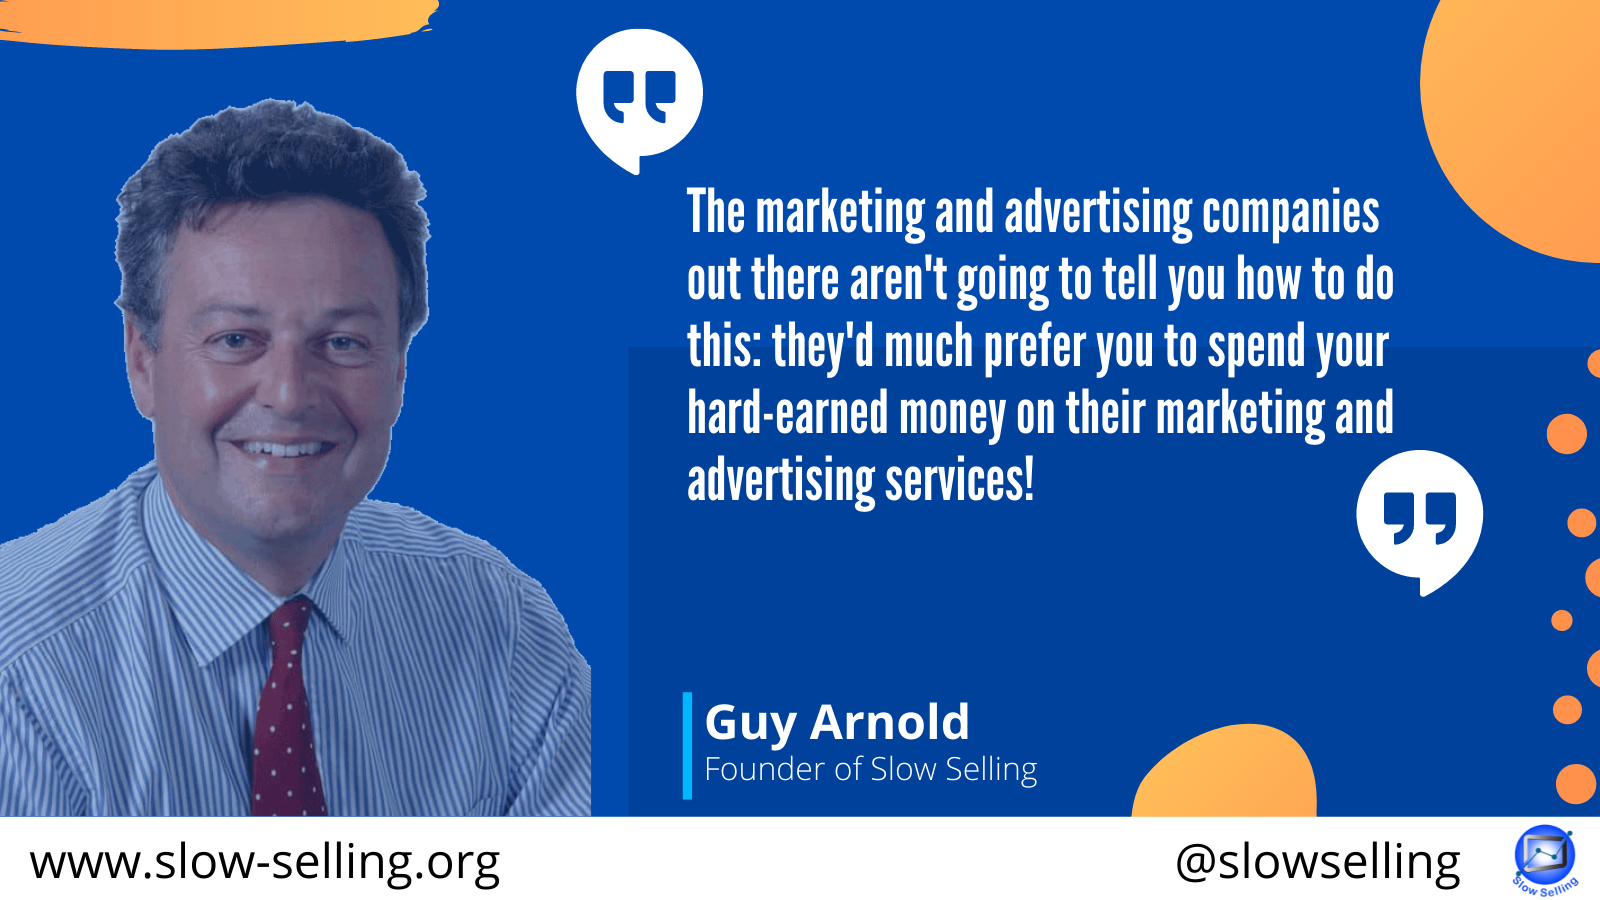 Season 2 Episode 23 - How can I get more customers without spending a fortune on advertising